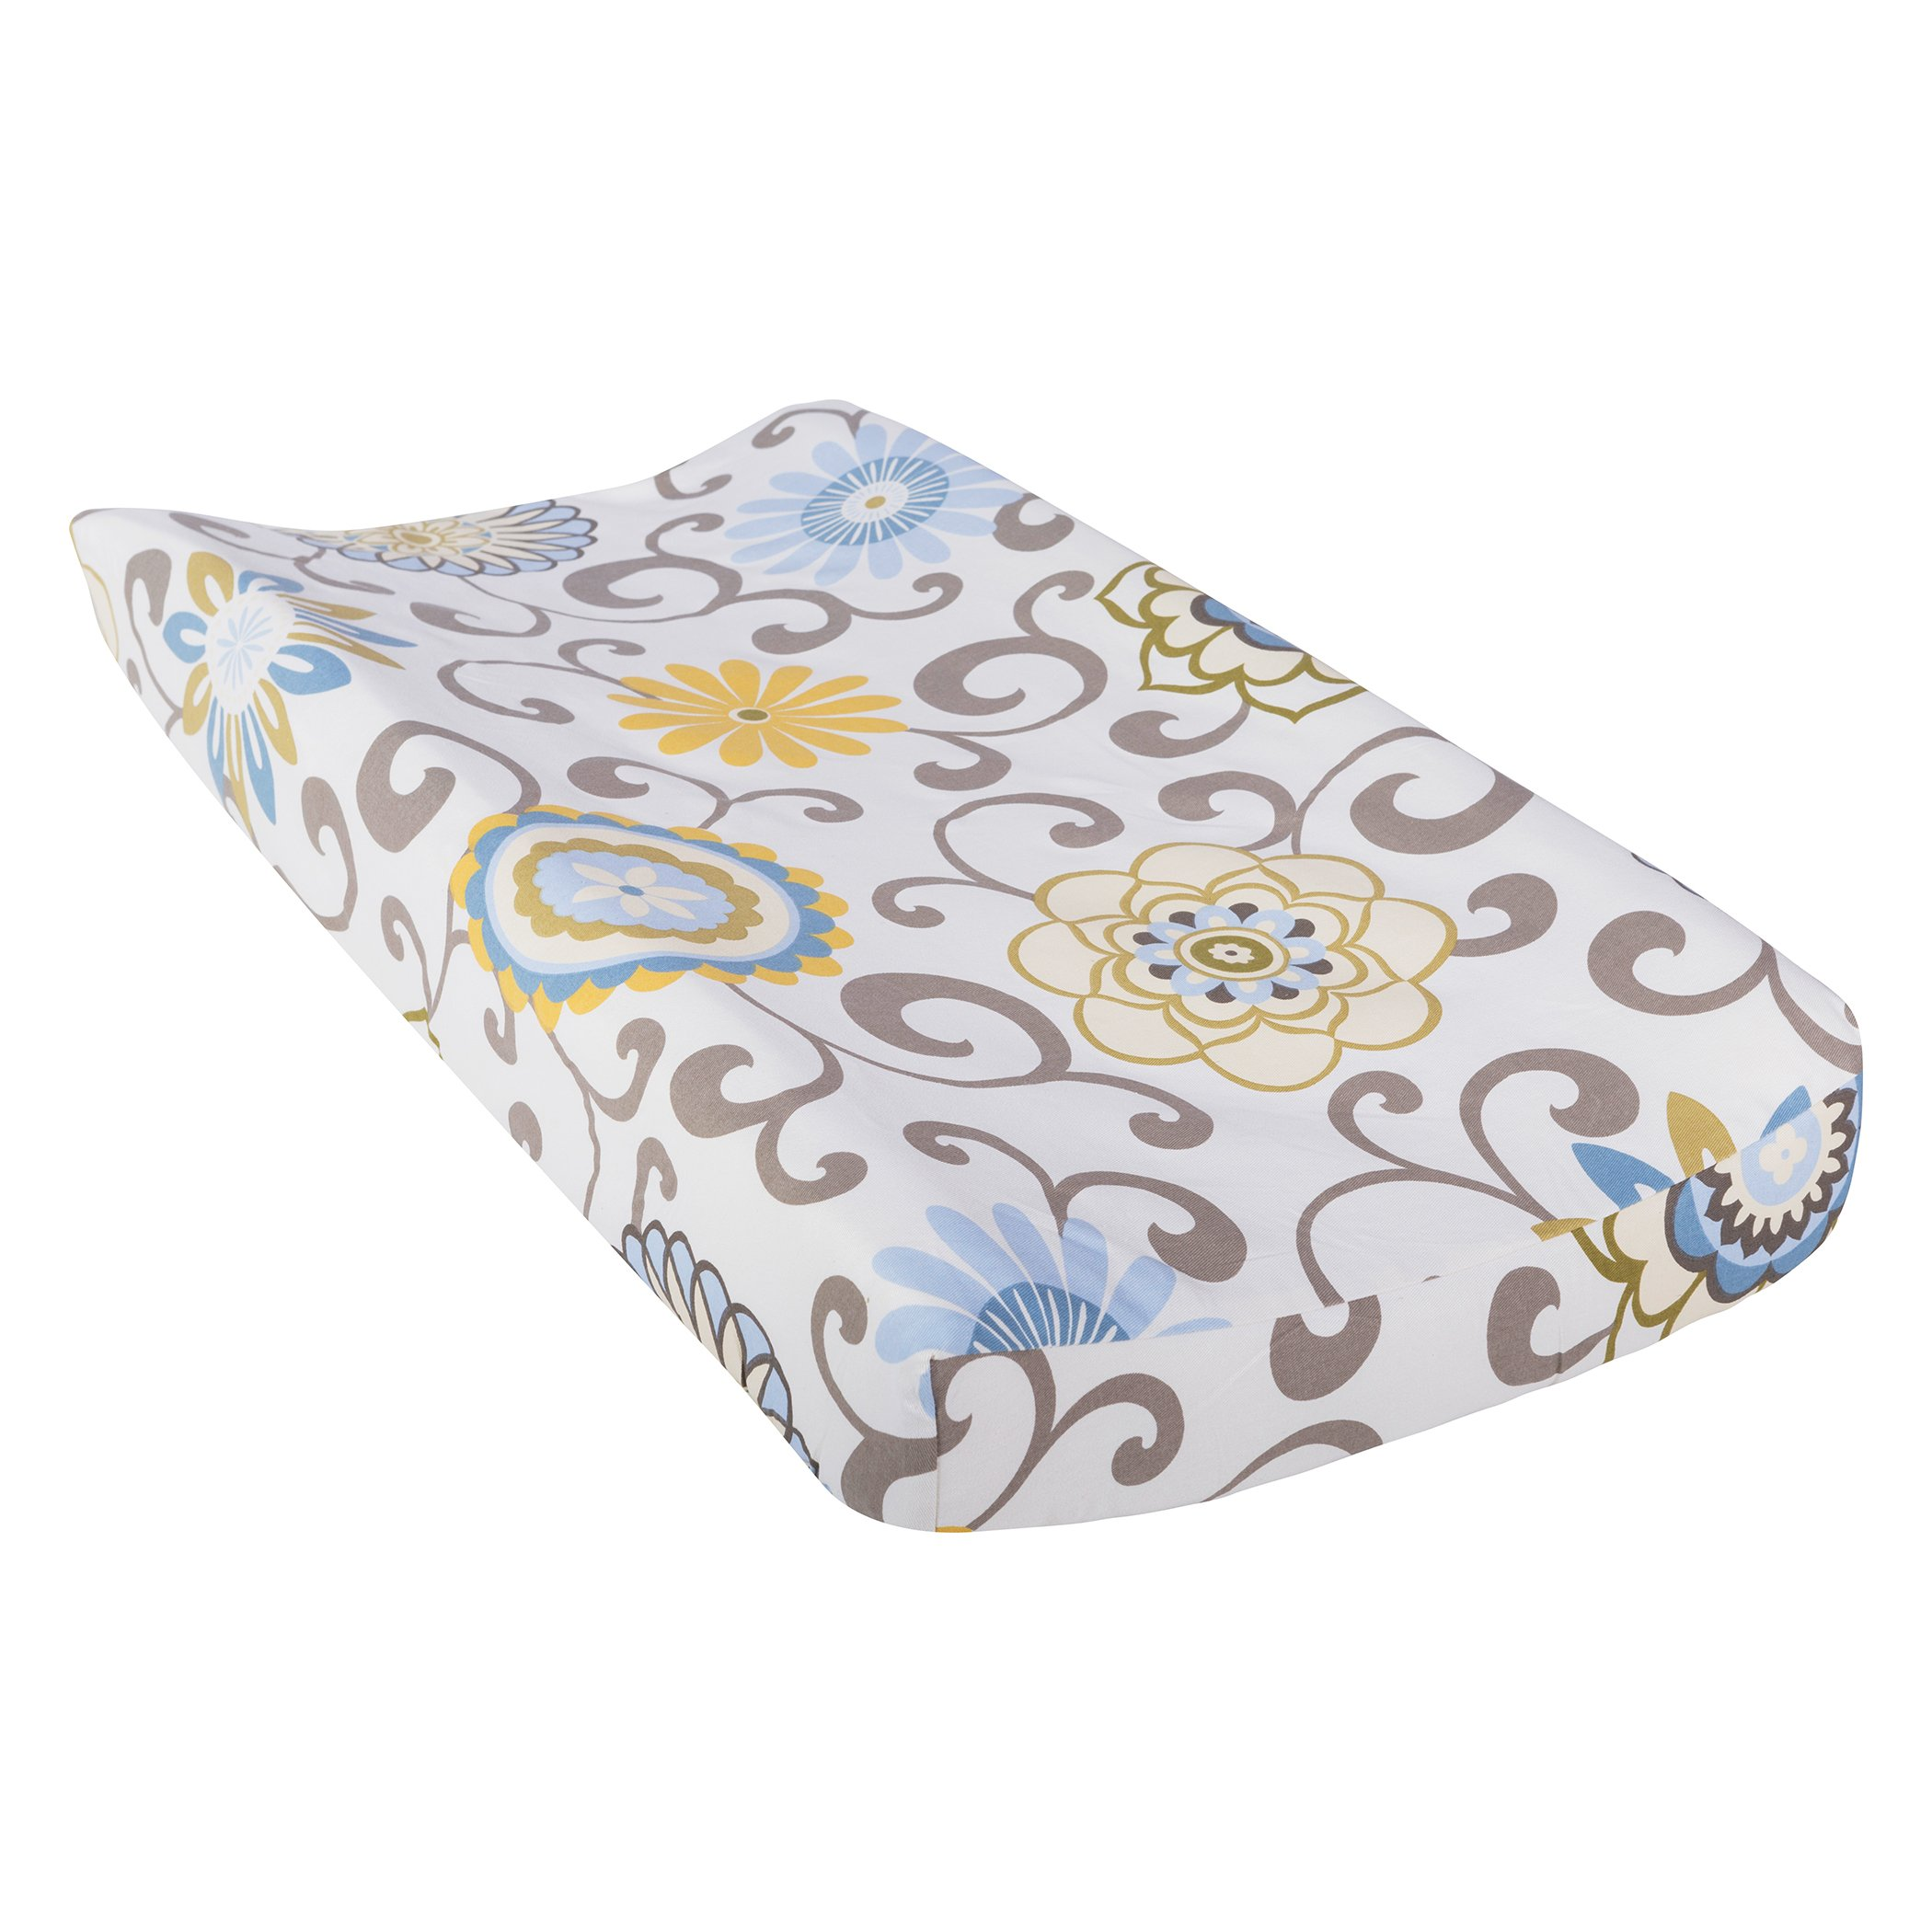 Trend Lab Waverly Baby Pom Pom Spa Changing Pad Cover, Blue/Cream/Green/Gray